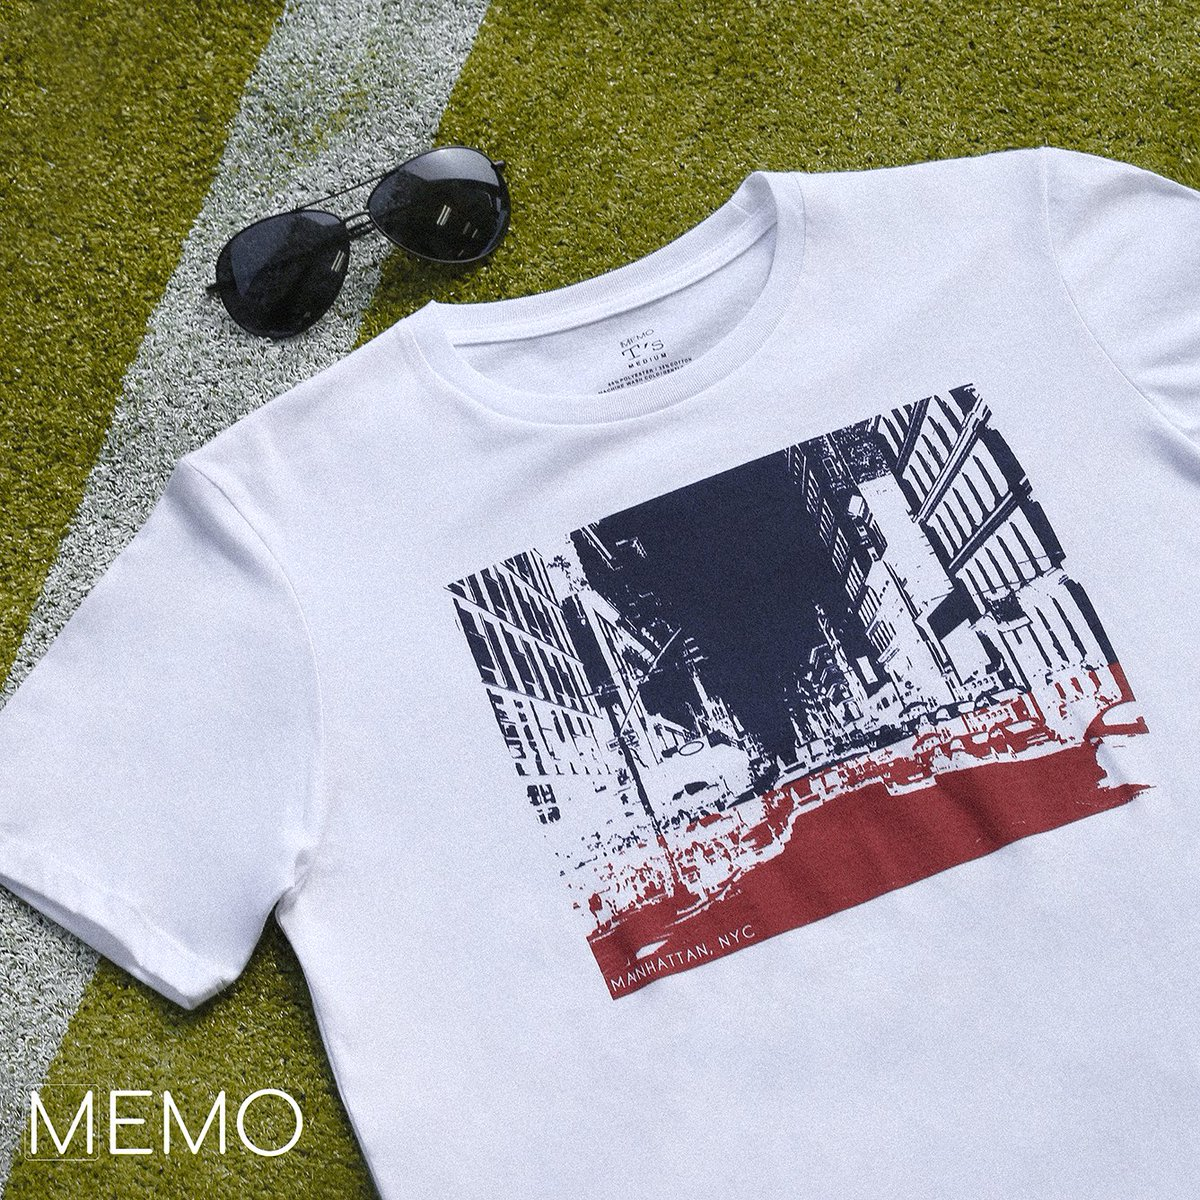 Living the NYC way. Get this tee and optics for P399 each. #ChasingSummer #MemoFashion #graphictee #prints #optics<br>http://pic.twitter.com/MmV2moaTn1